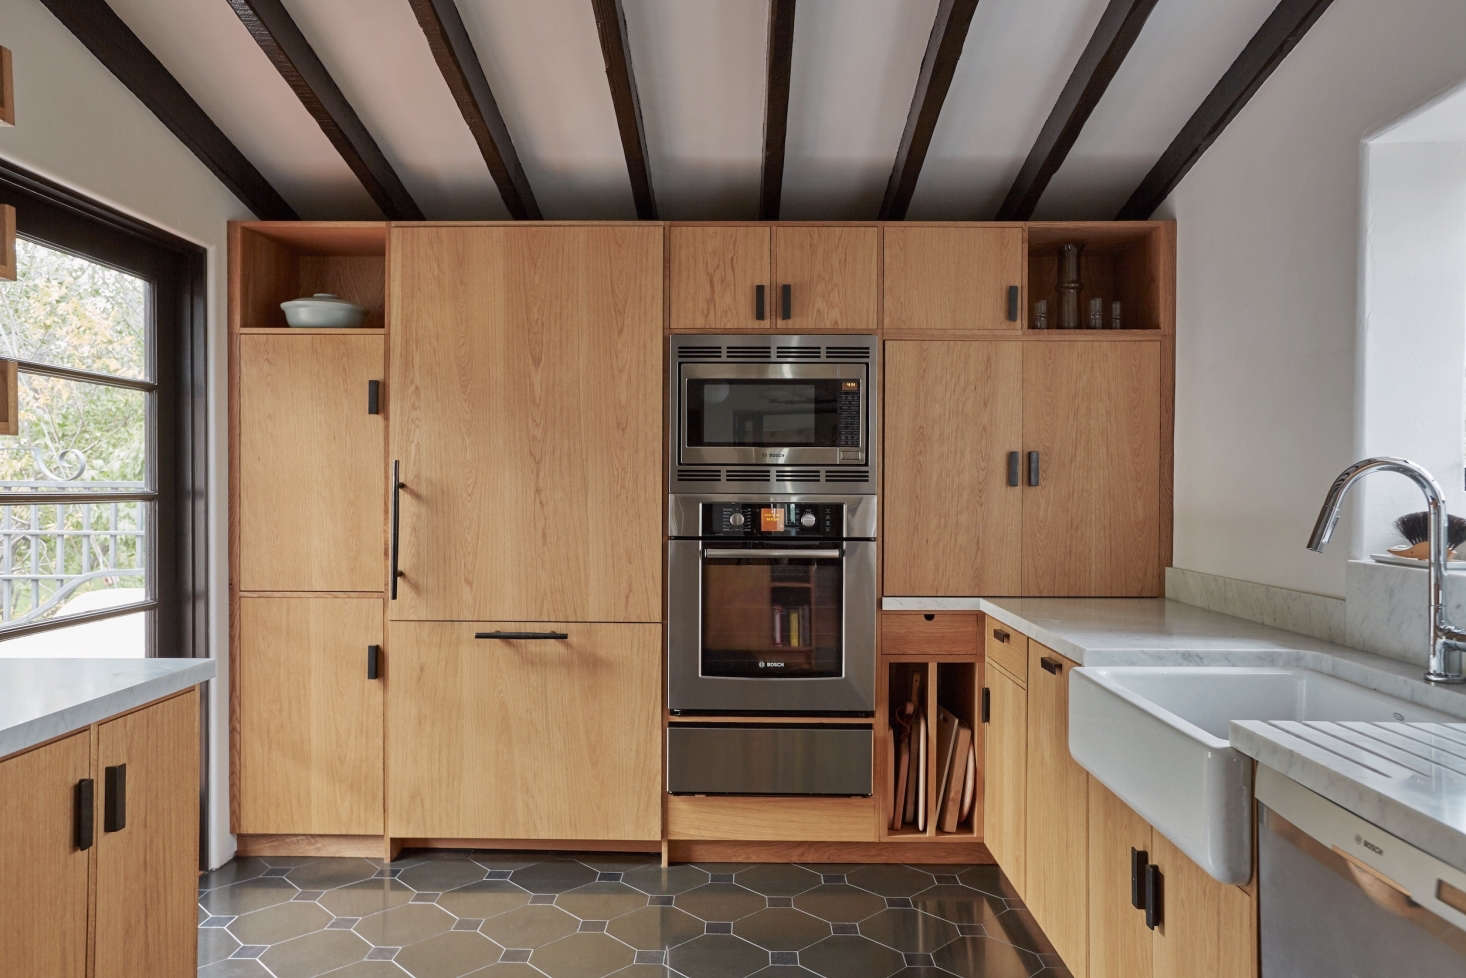 Trend Alert 9 Kitchens with FloortoCeiling Cabinetry